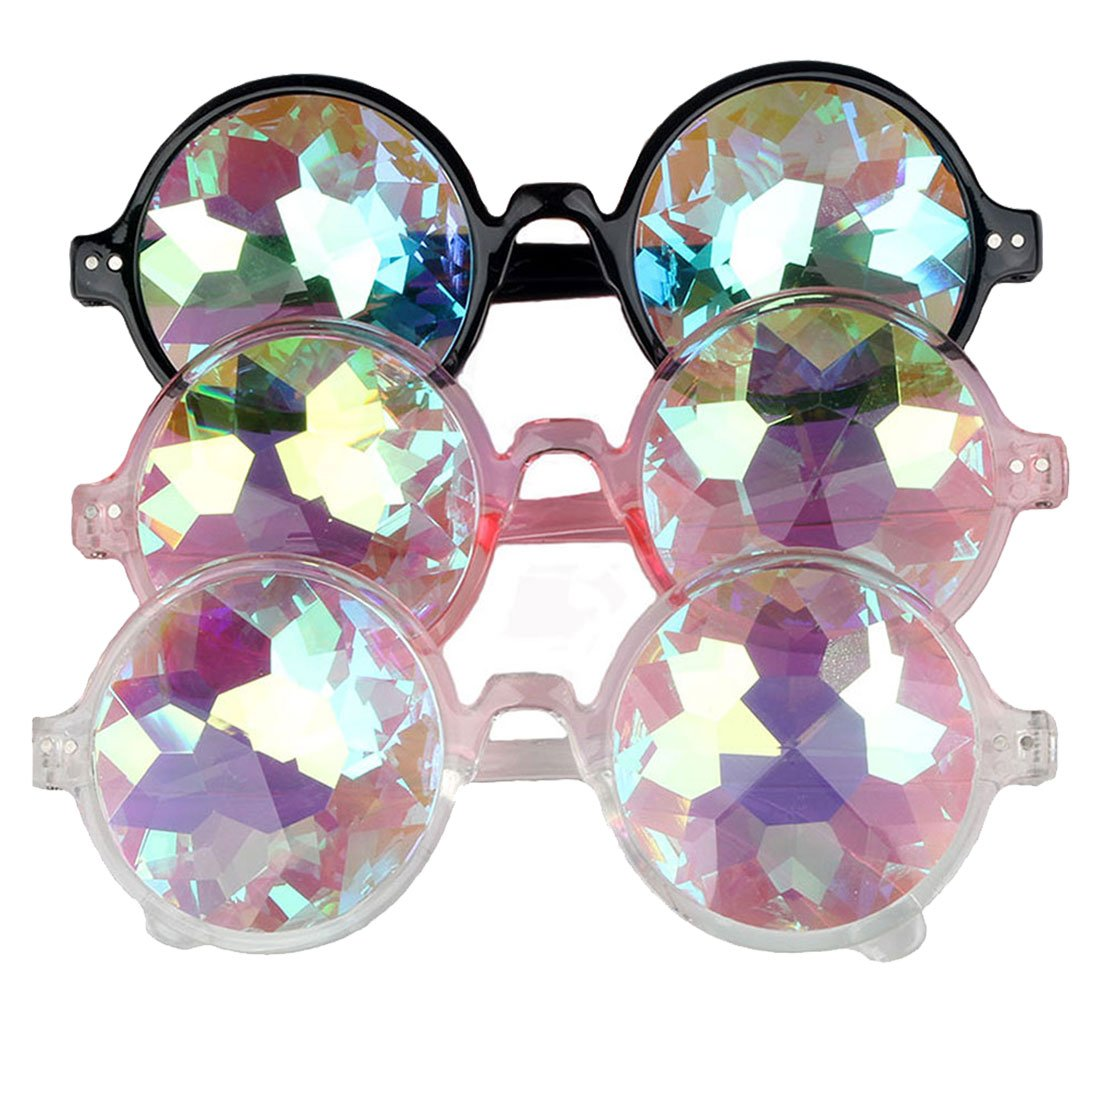 Festivals Kaleidoscope Glasses Rainbow Prism Sunglasses Steampunk Goggles by FIRSTLIKE